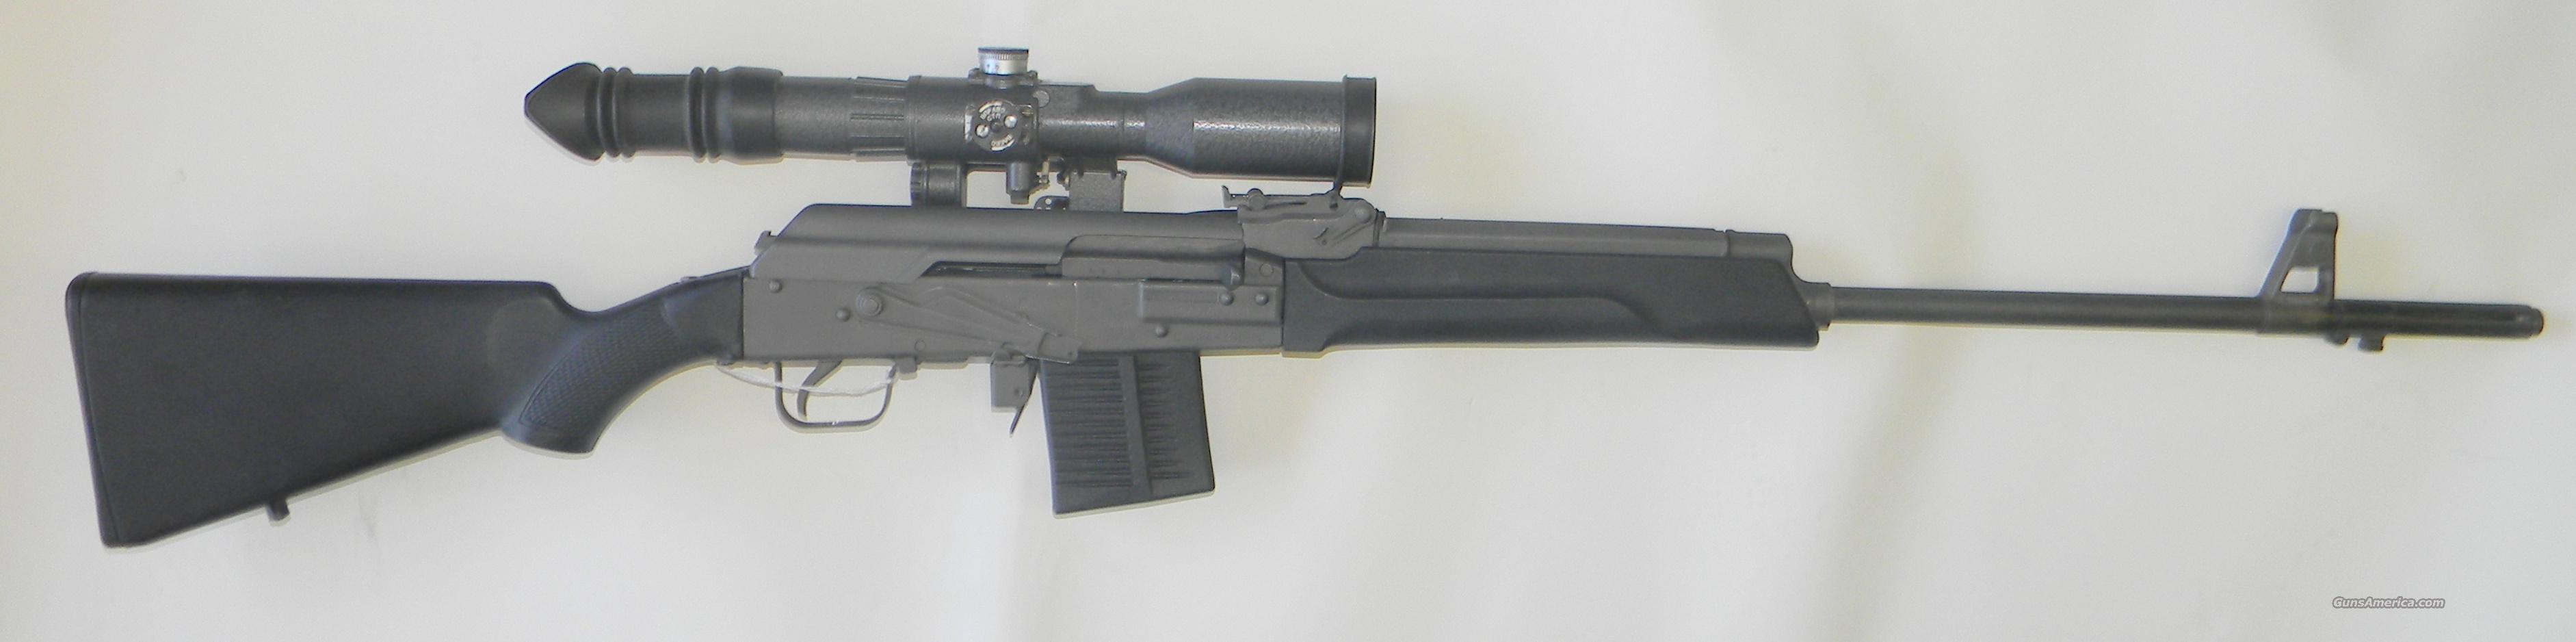 "Saiga Dragunov .308 ""Izhmash""  Guns > Rifles > Saiga Rifles"